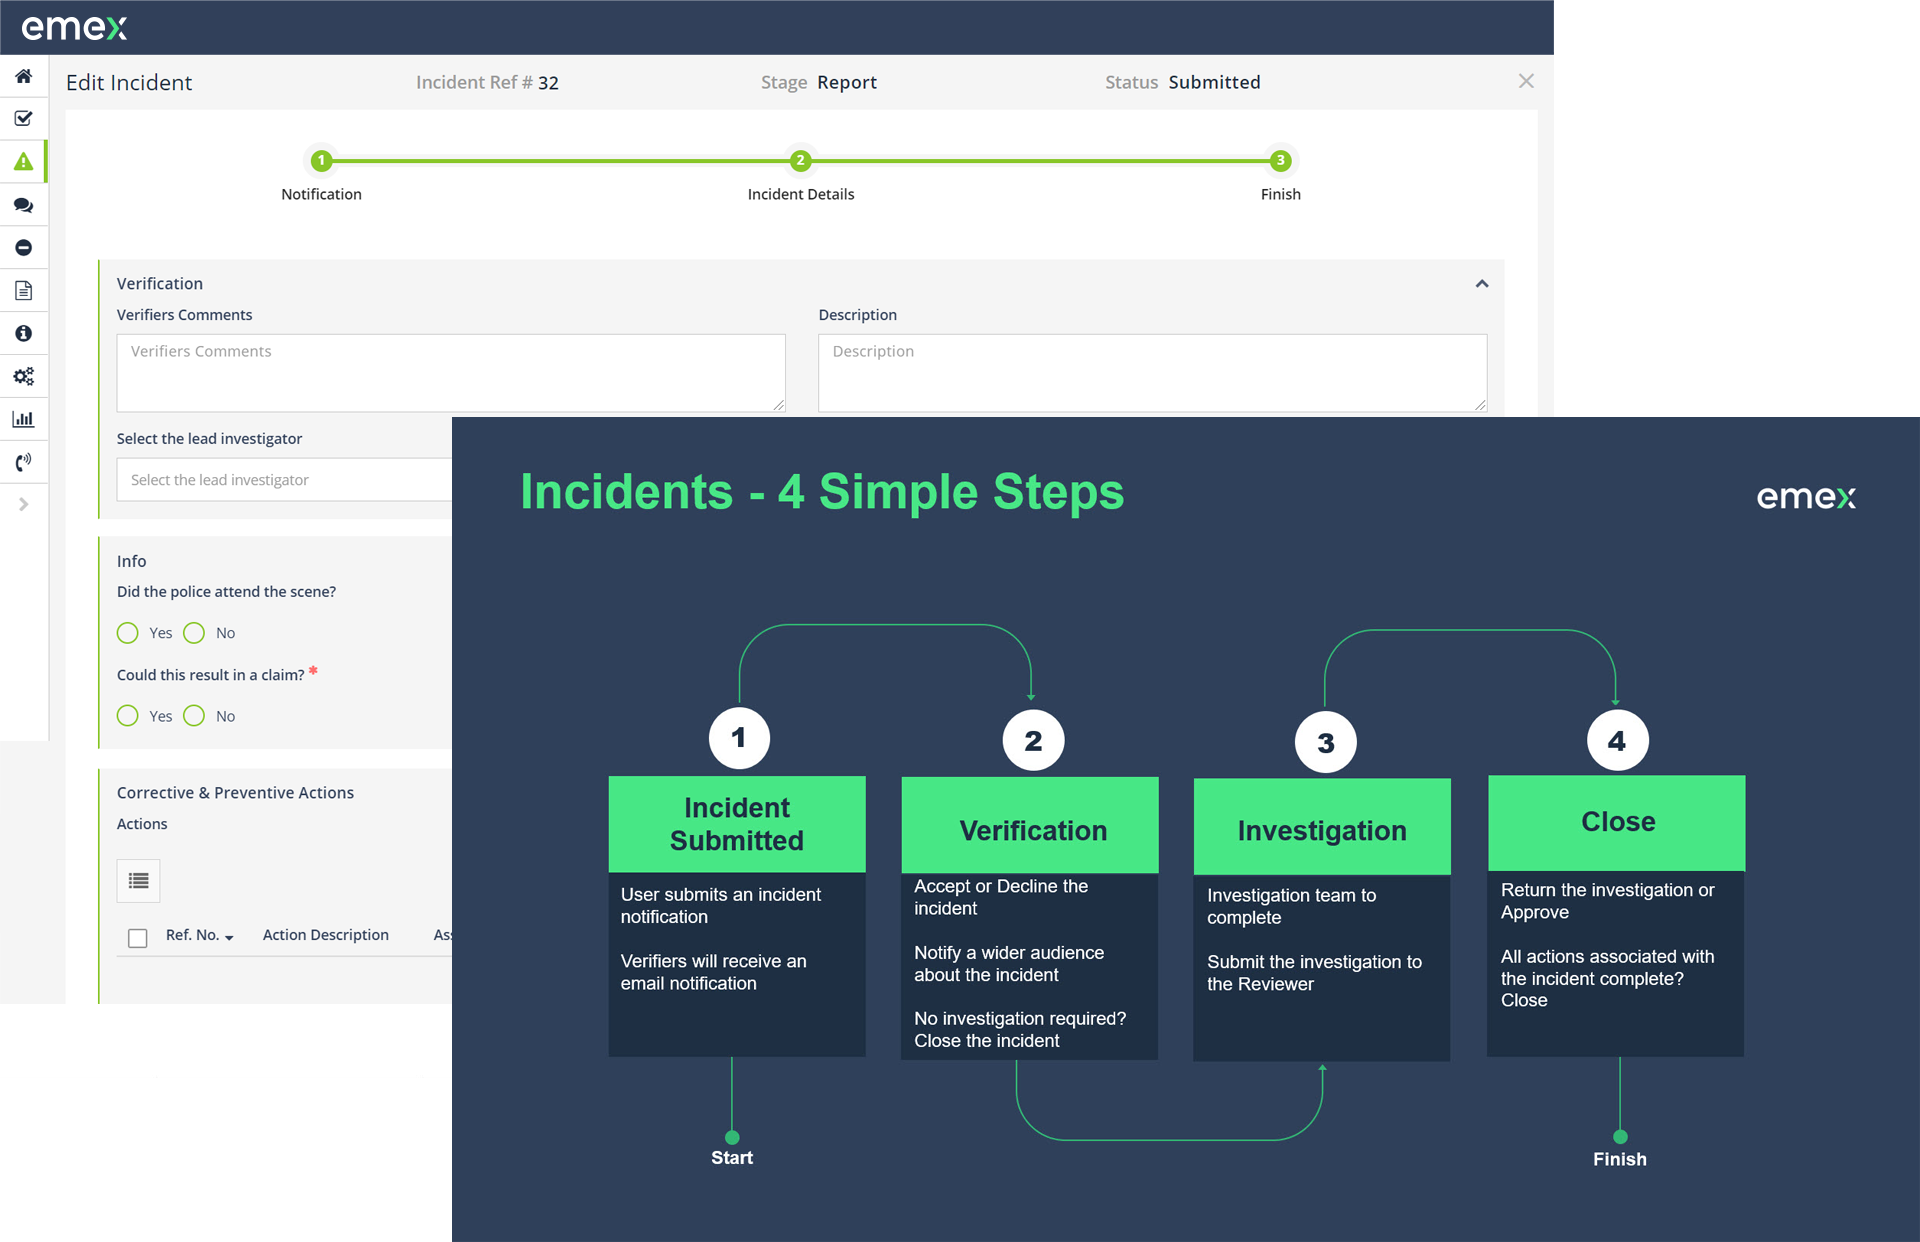 Emex EHS & ESG Software Software - Manage incident lifecycle from open through to close out to ensure everything is completed from start to finish.